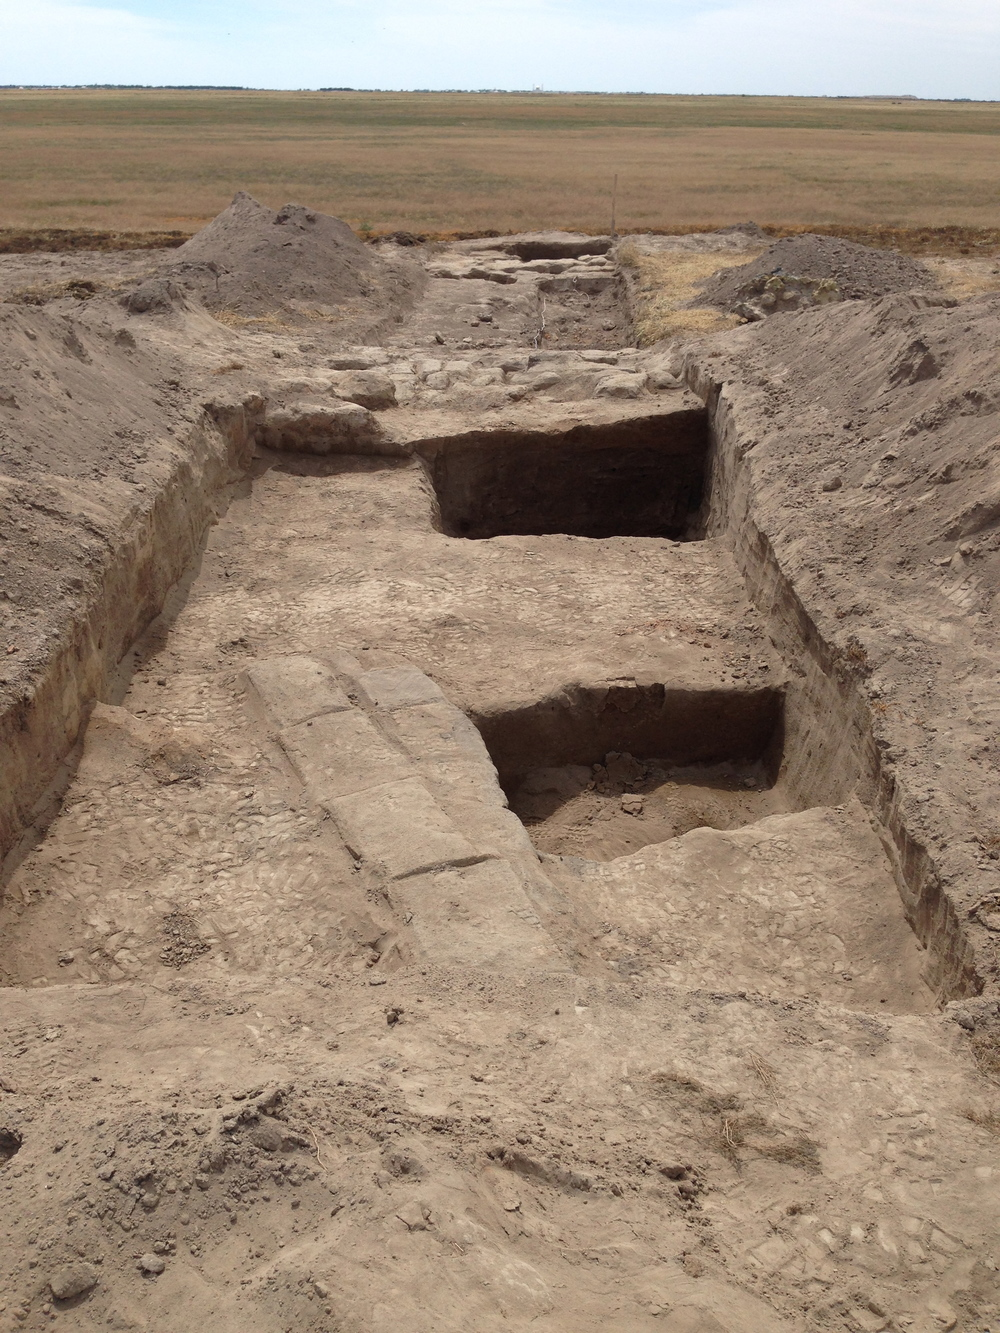 Trench One, showing the inner mud-brick walls, and deeper cuts to investigate the layers of soil.